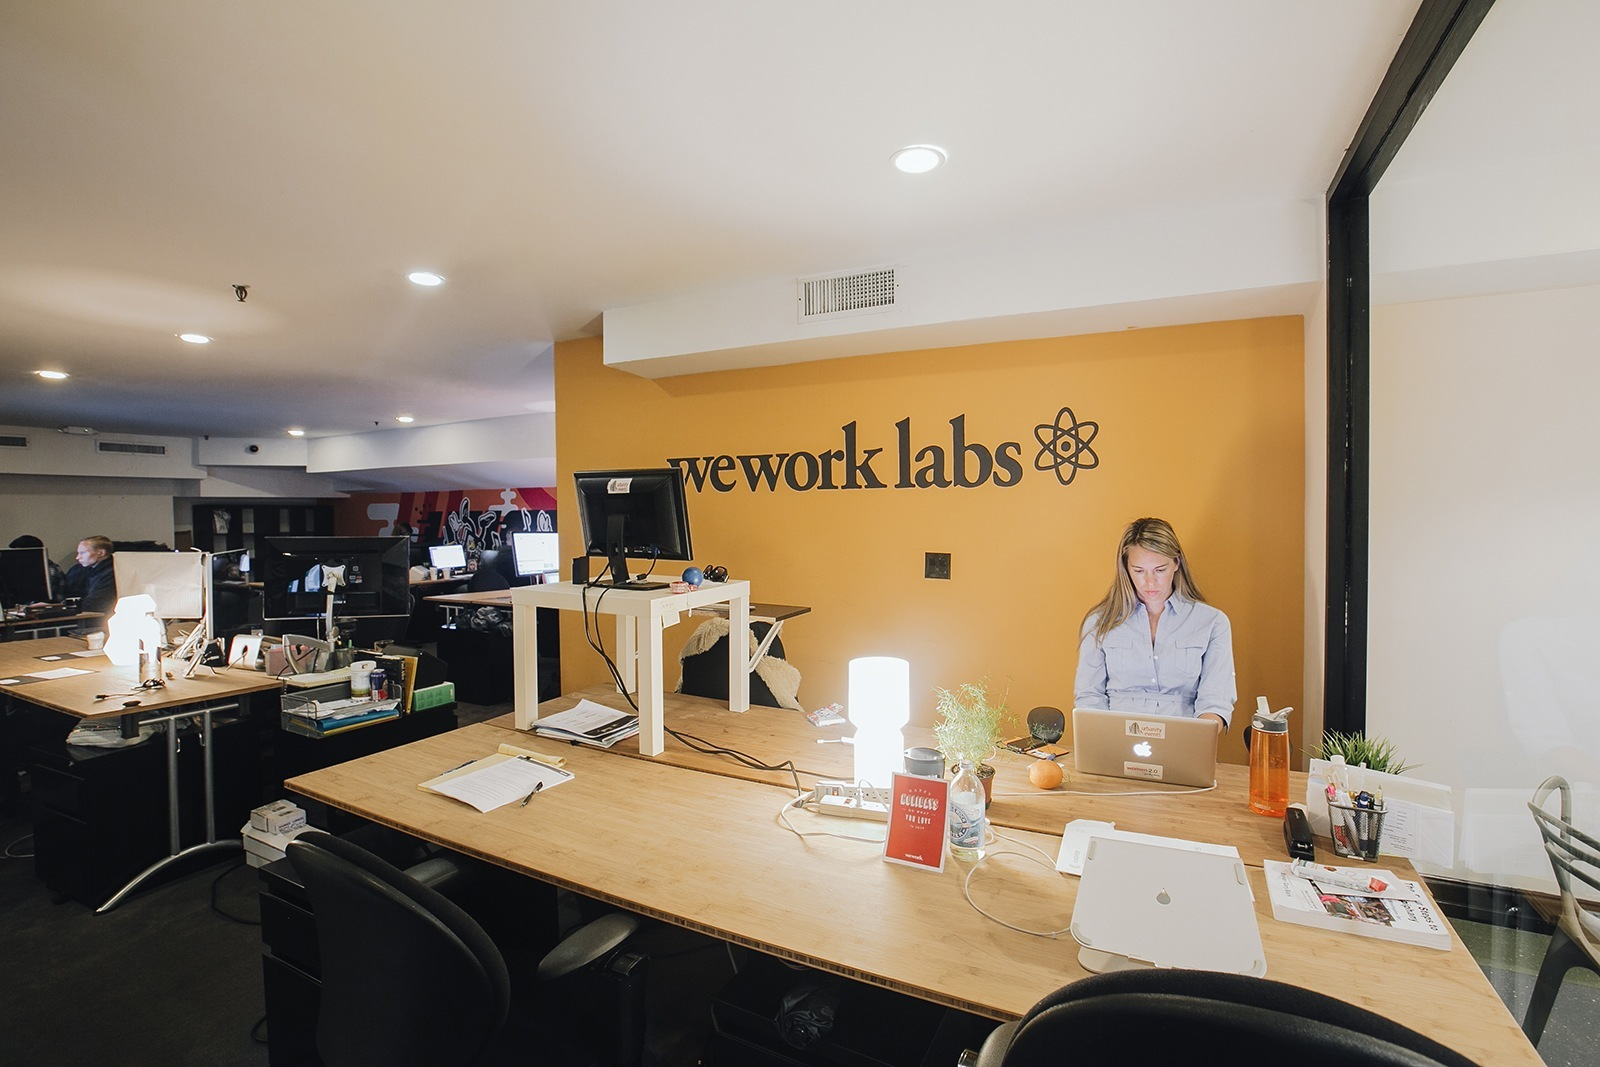 Vans San Francisco >> A Look Inside WeWork's SoMa Coworking Space - Officelovin'